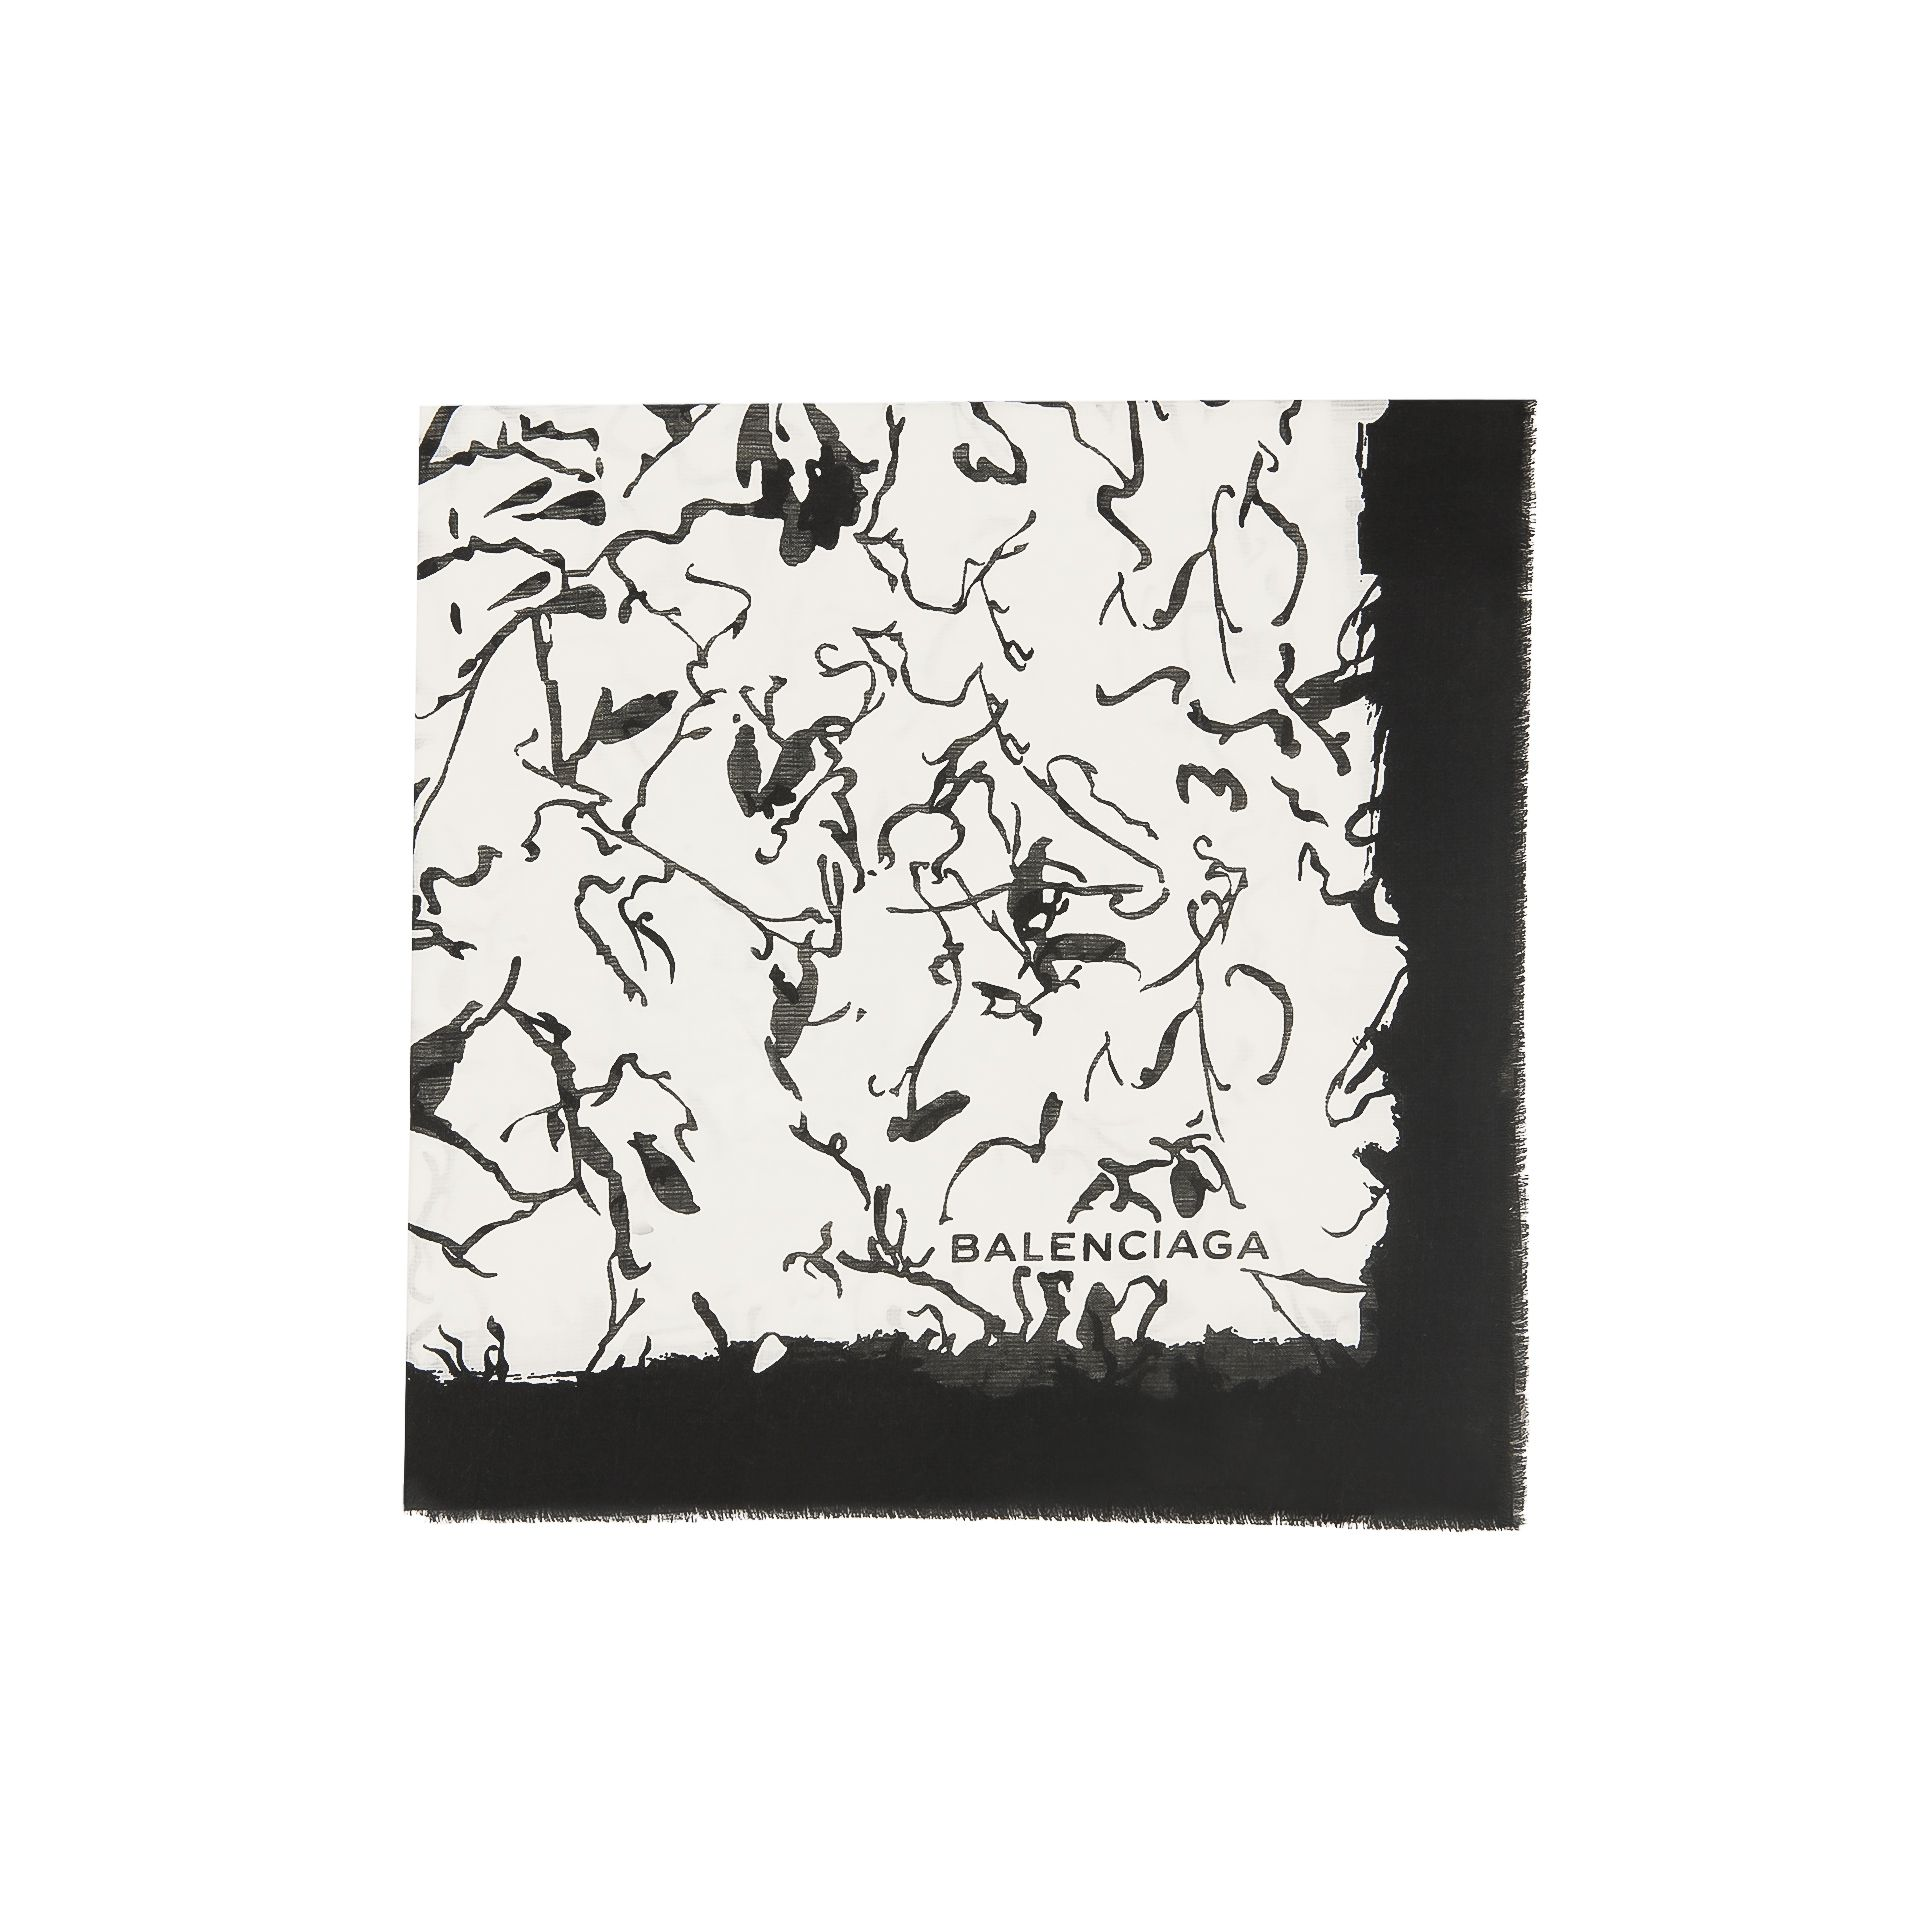 Balenciaga 'Ink Drawing' Scarf